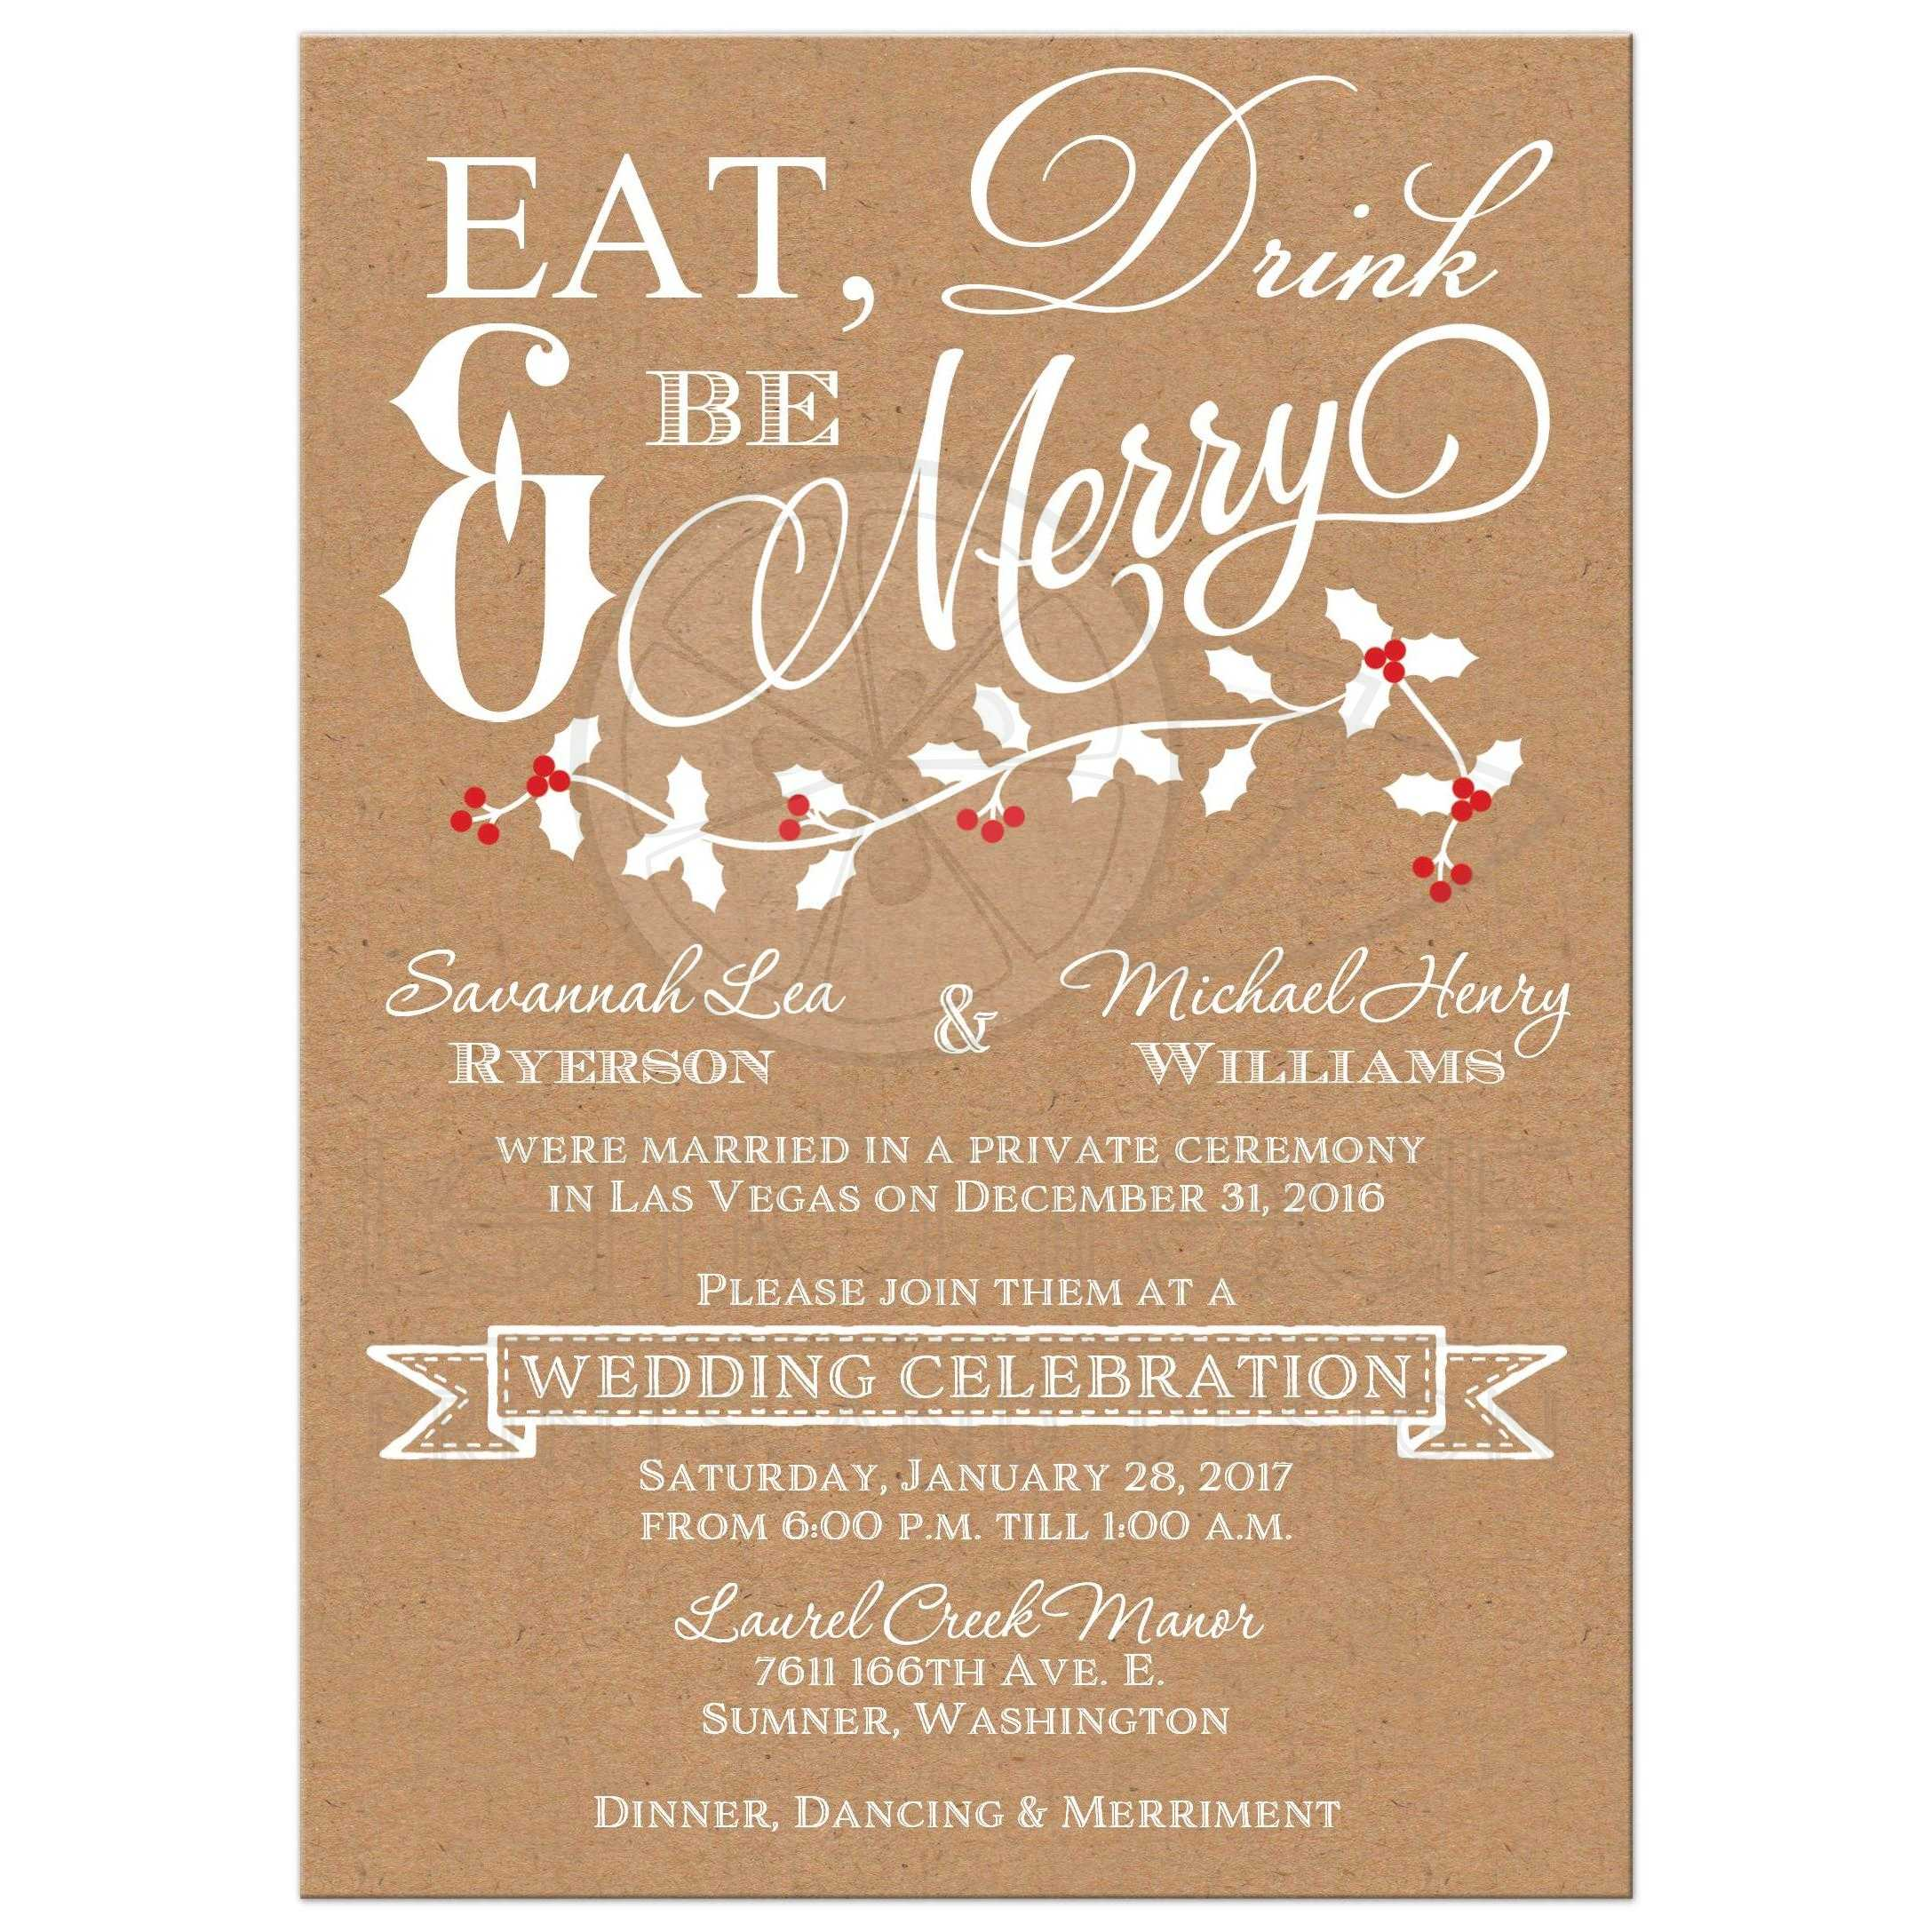 Reception invitations akbaeenw winter wedding reception invitation eat drink be merry faux stopboris Gallery